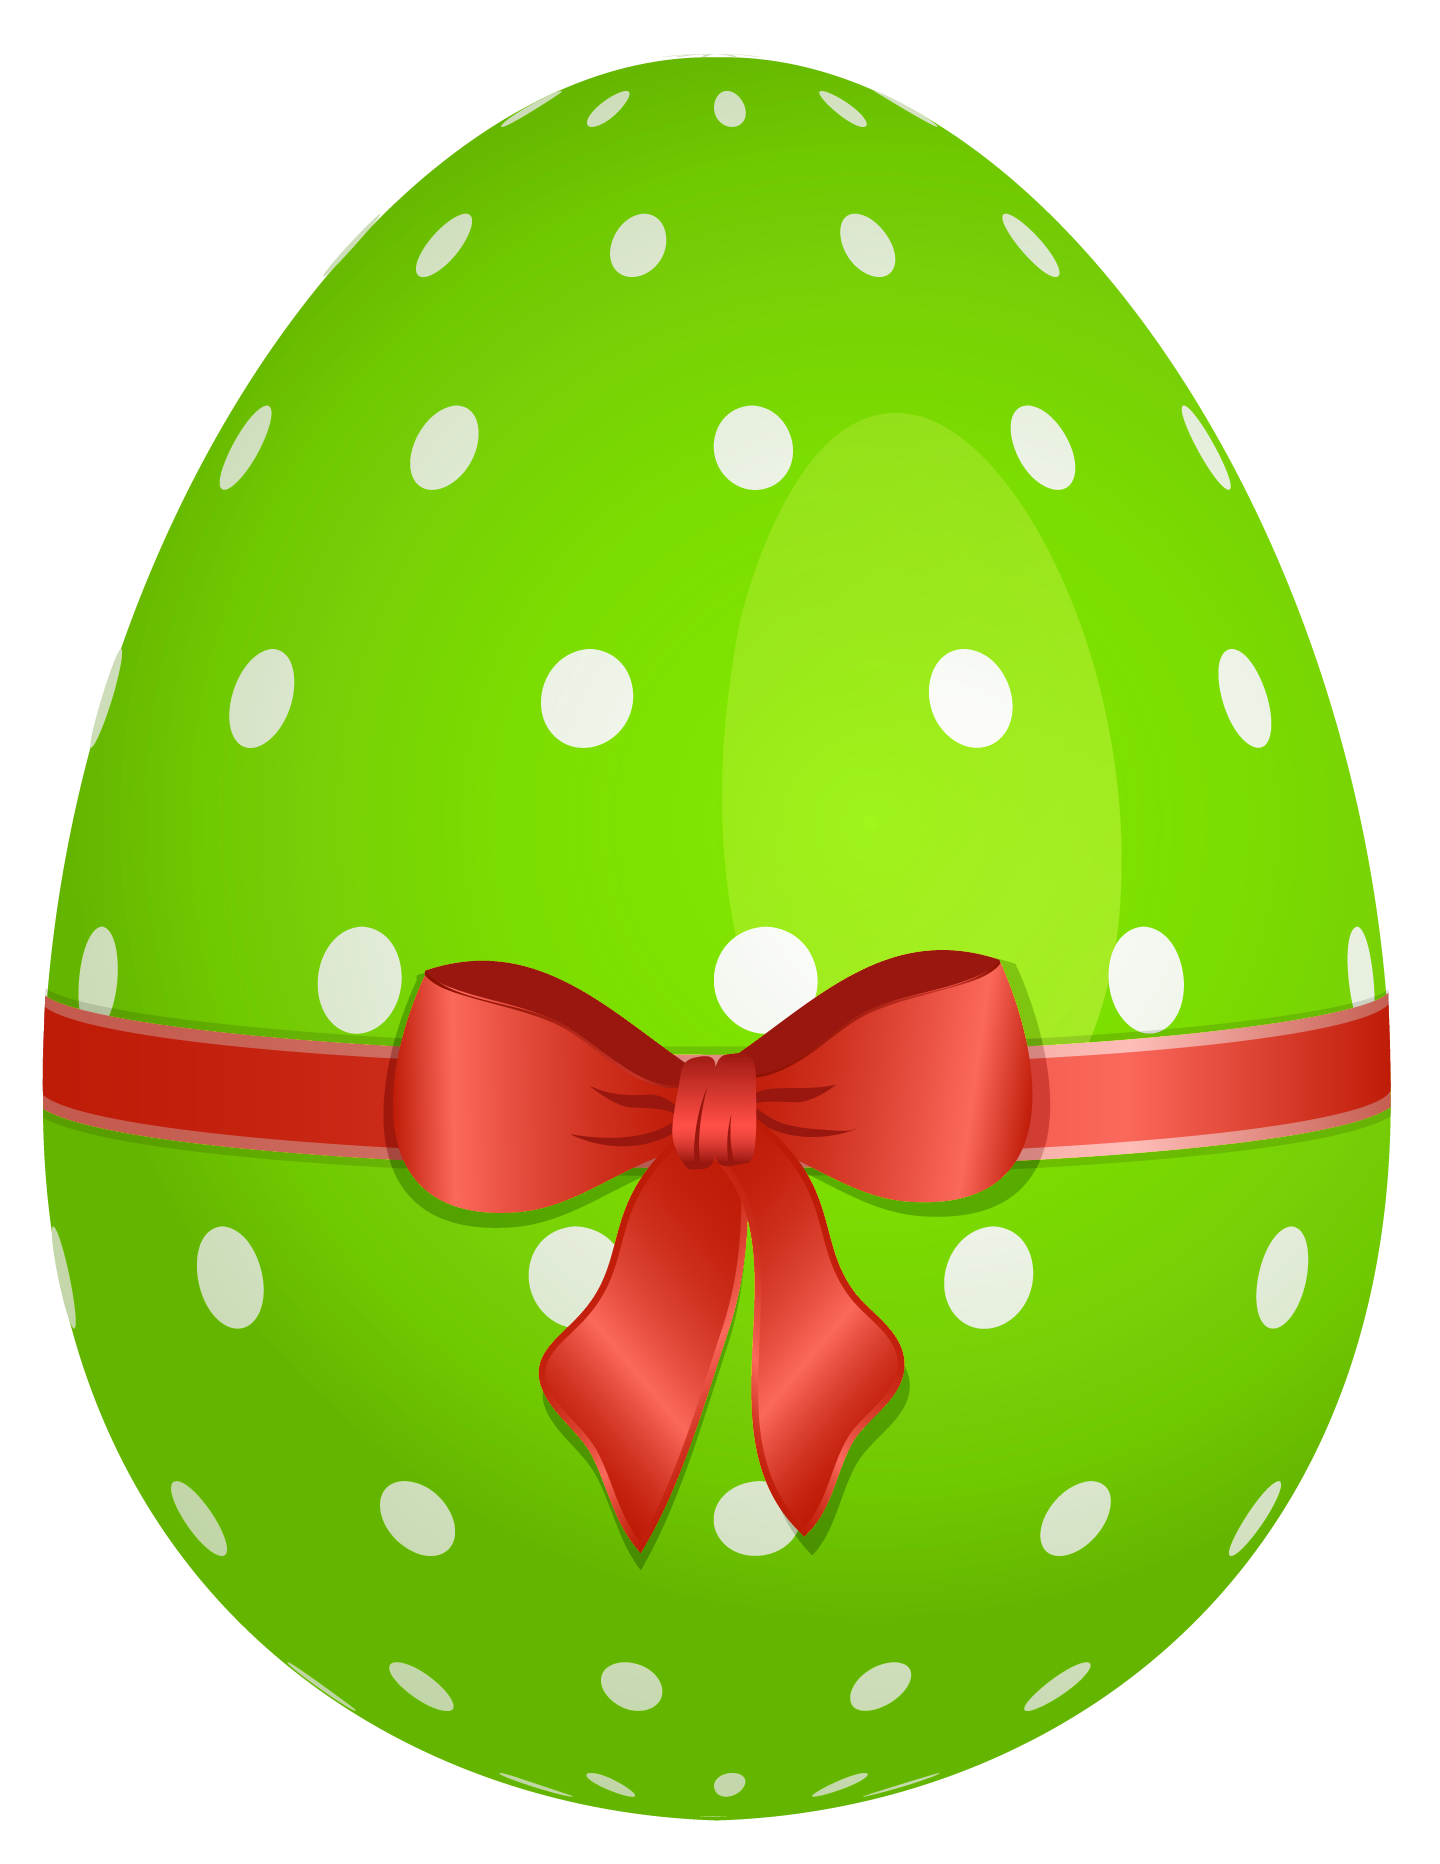 1440x1864 Free Download Microsoft Gallery Easter Eggs Clipart For Your